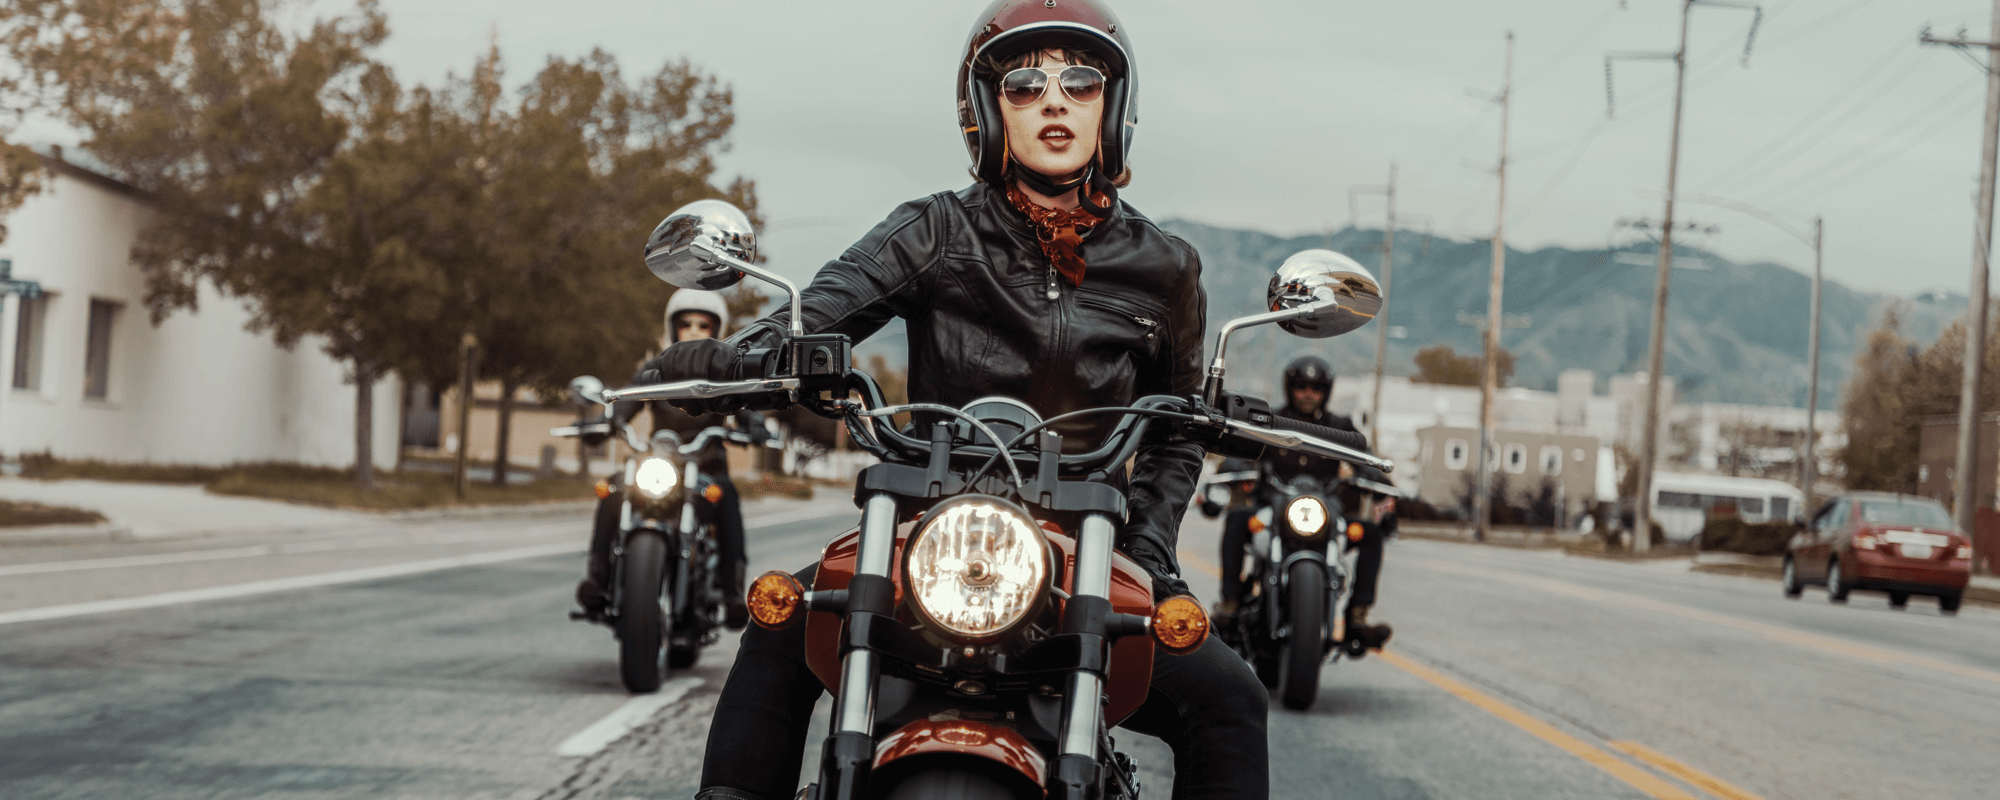 woman riding indian scout sixty